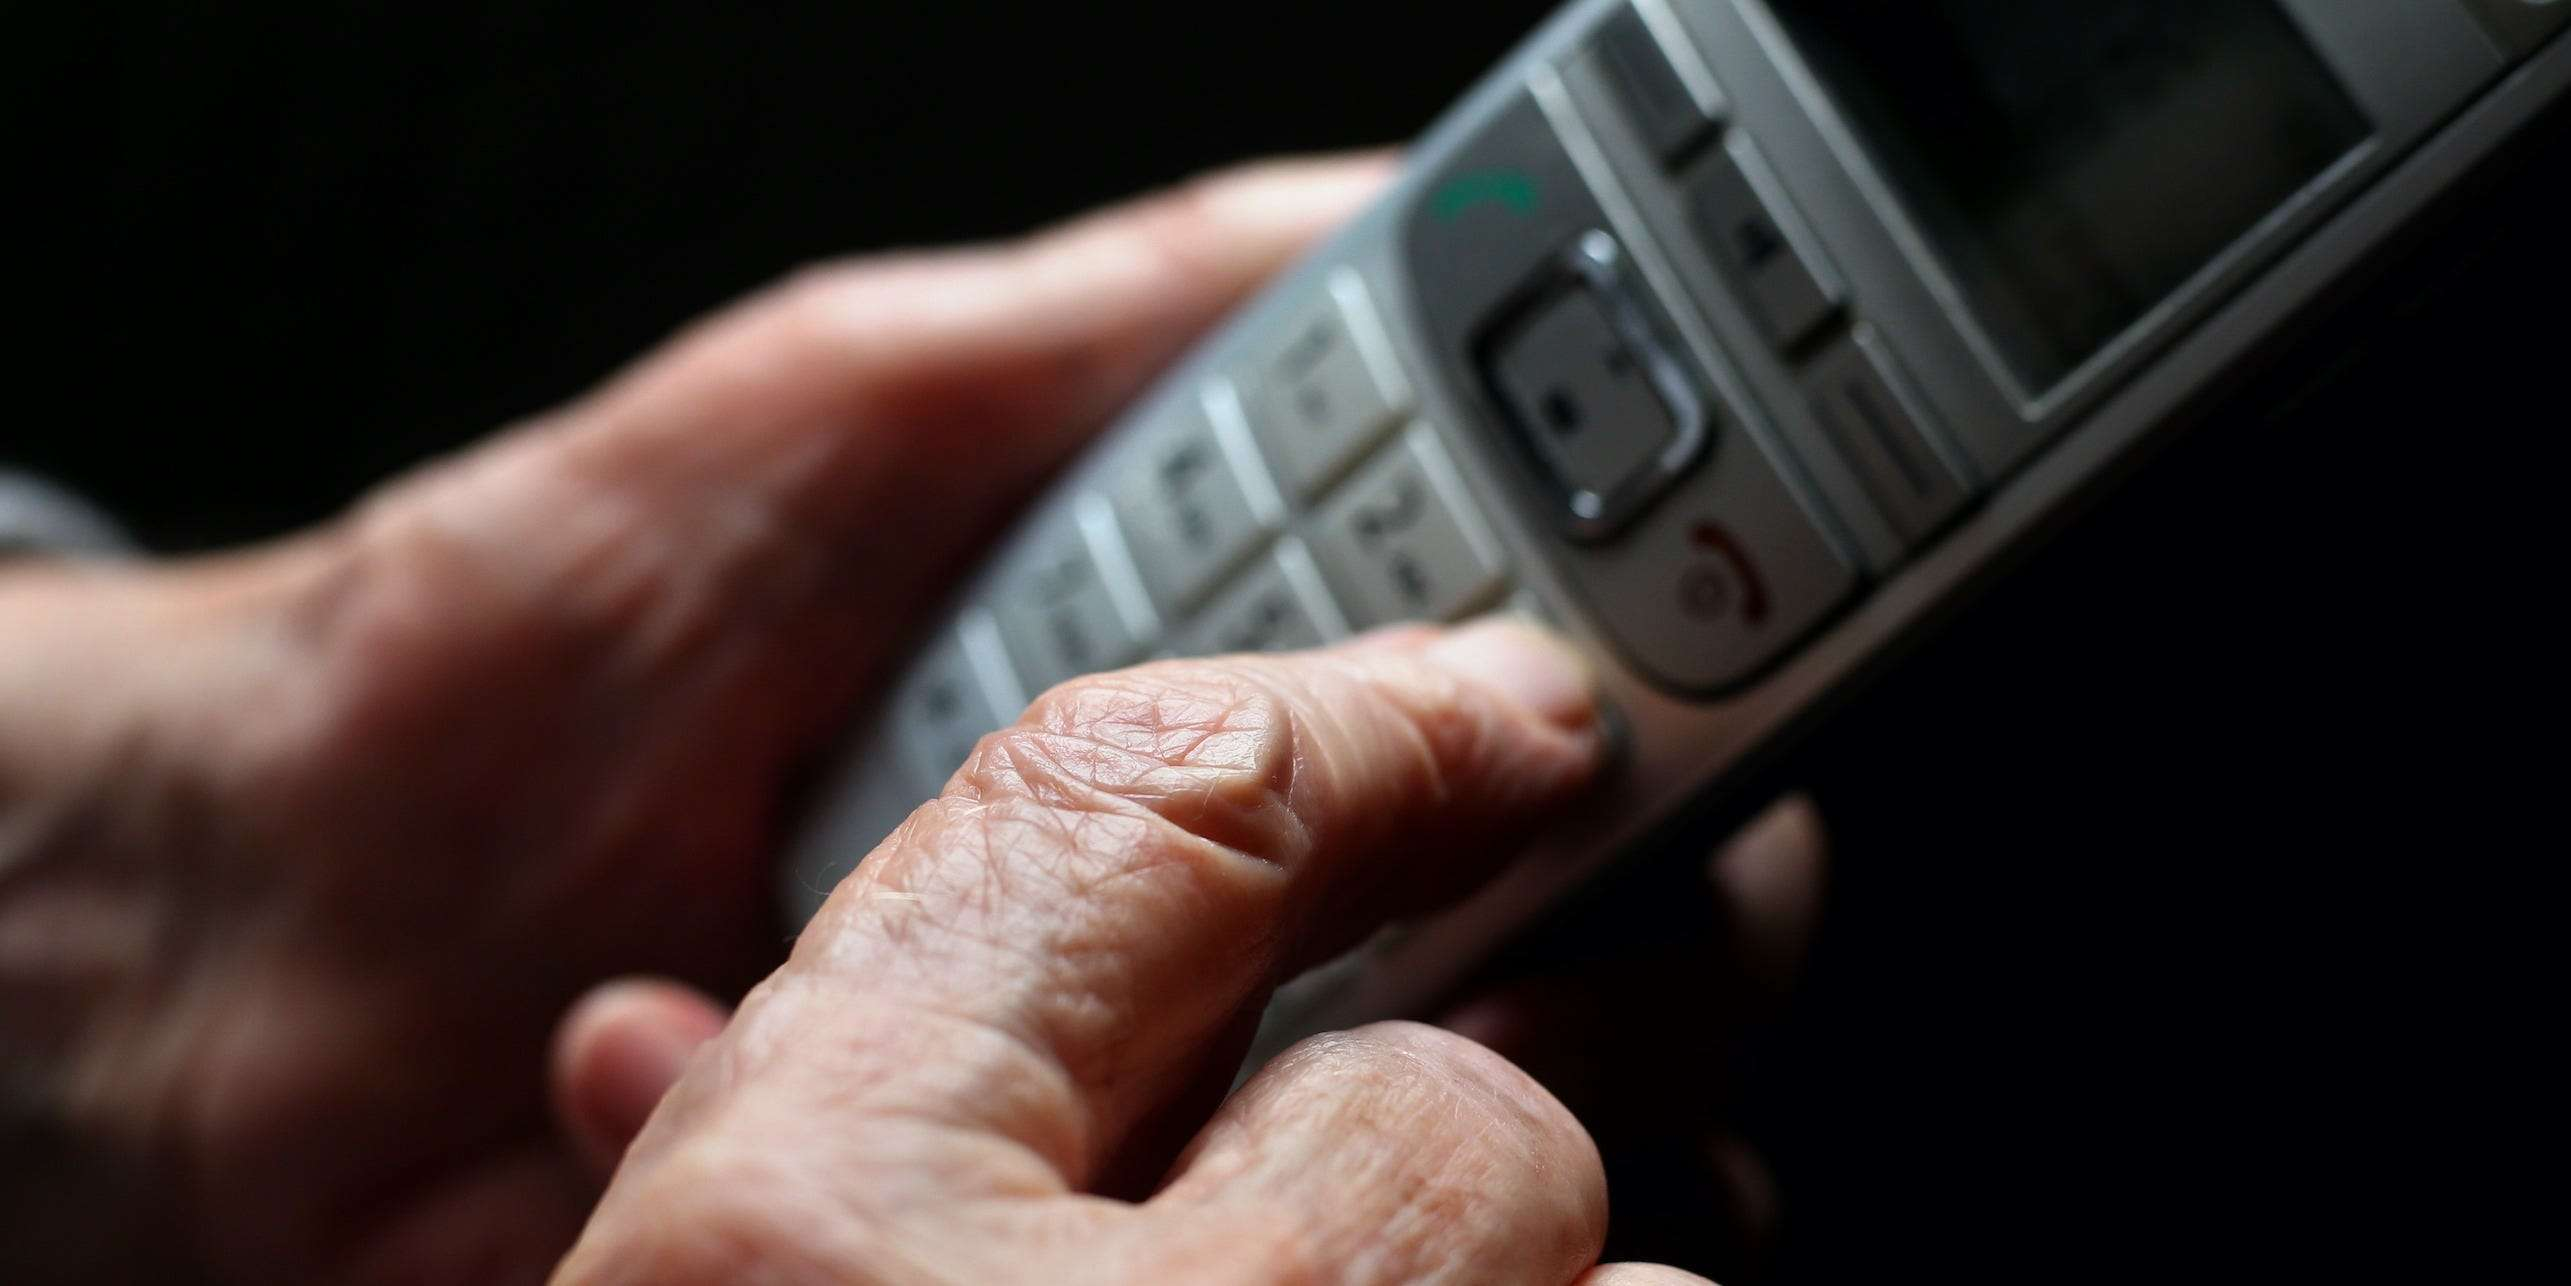 How To Block A Number On A Landline Phone And Reduce Spam Calls Business Insider